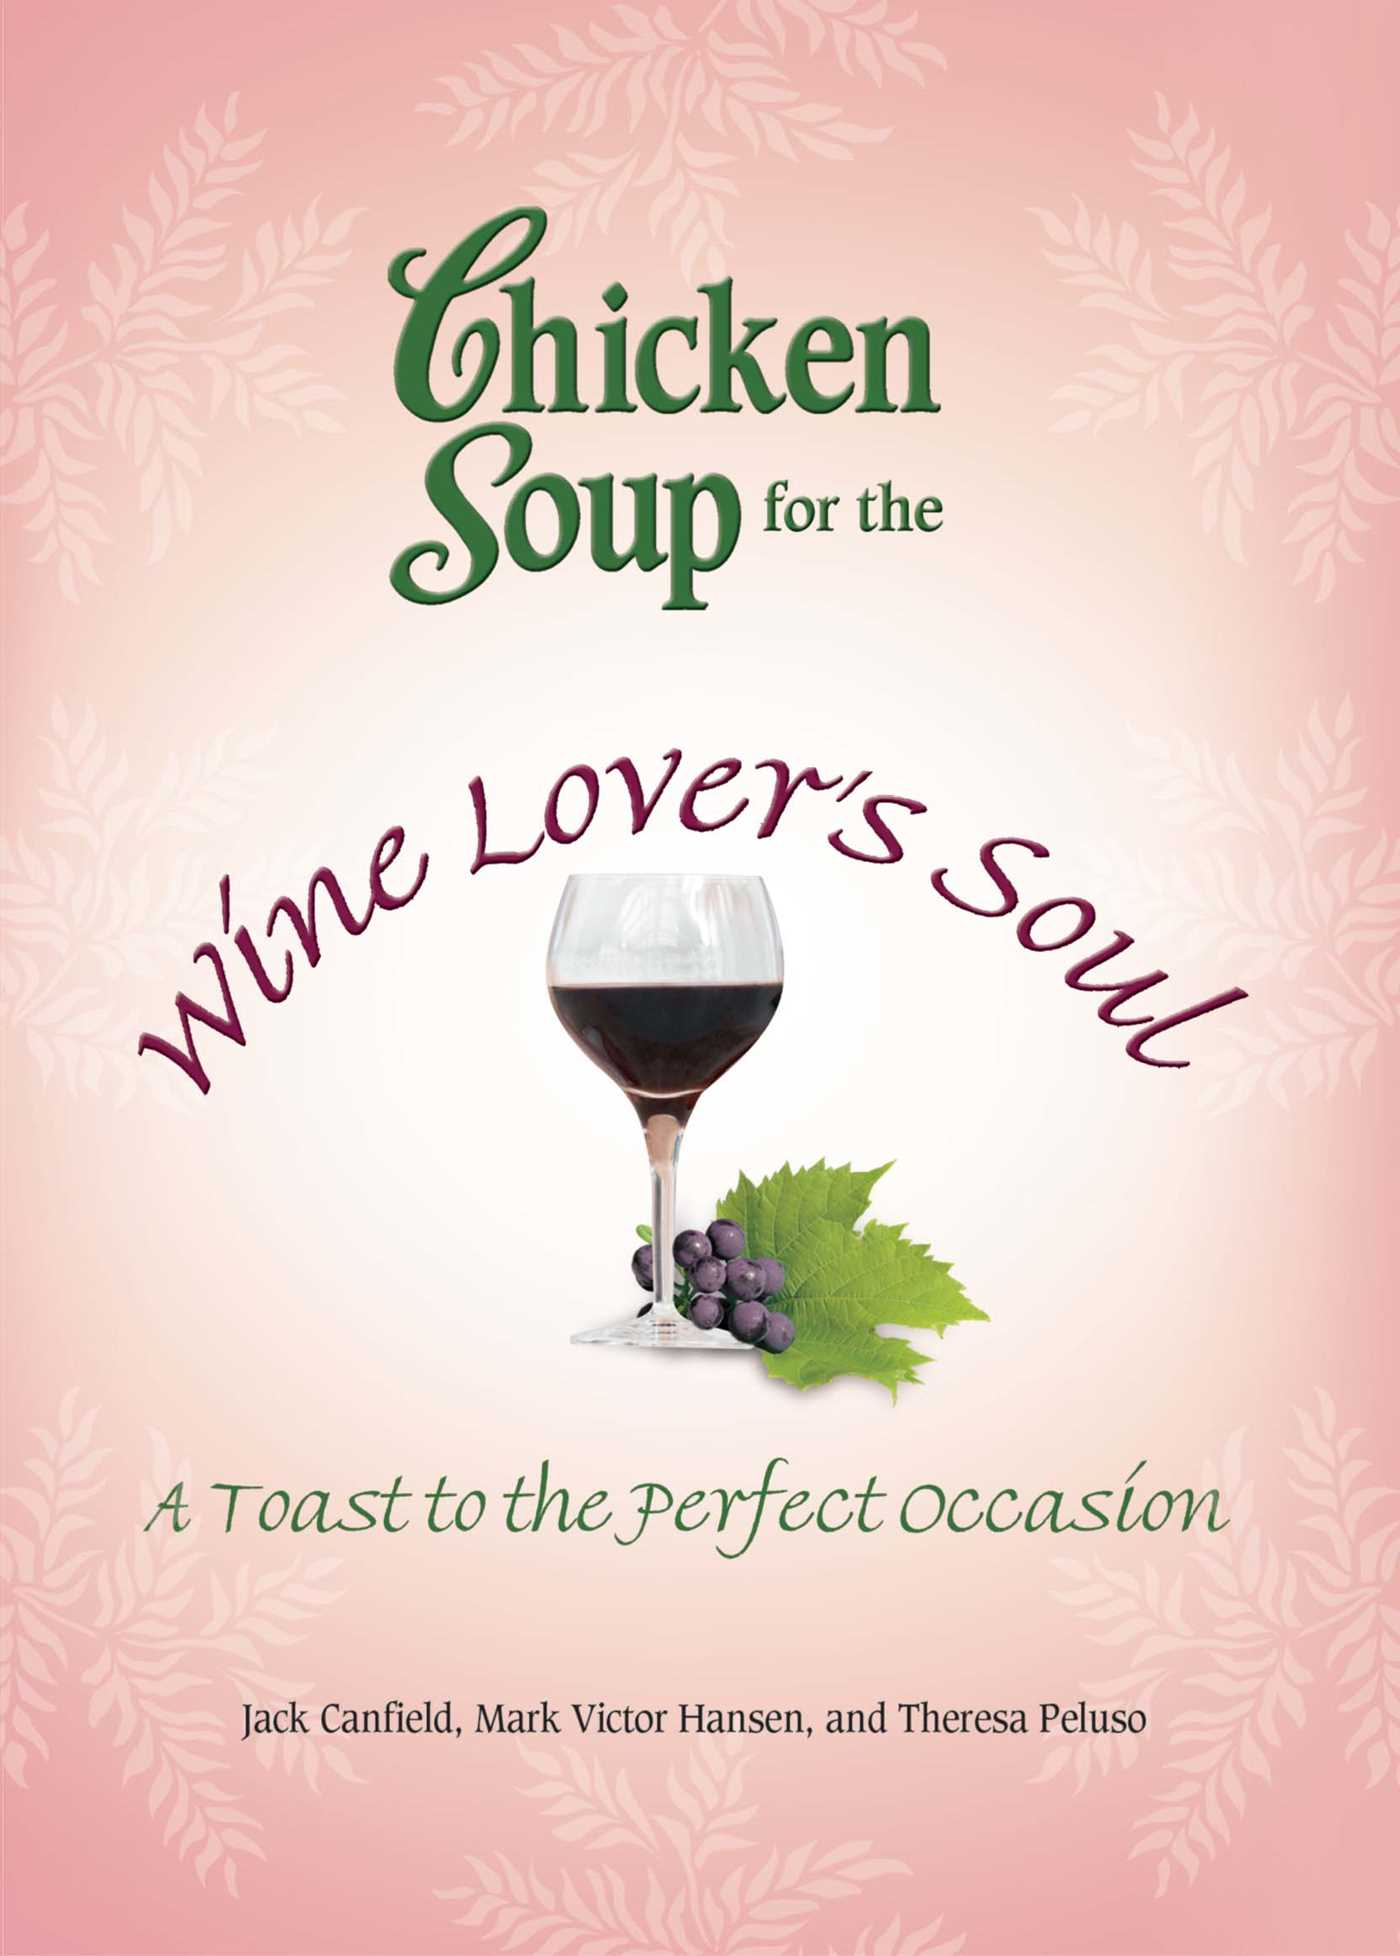 Chicken-soup-for-the-wine-lovers-soul-9781623610678_hr